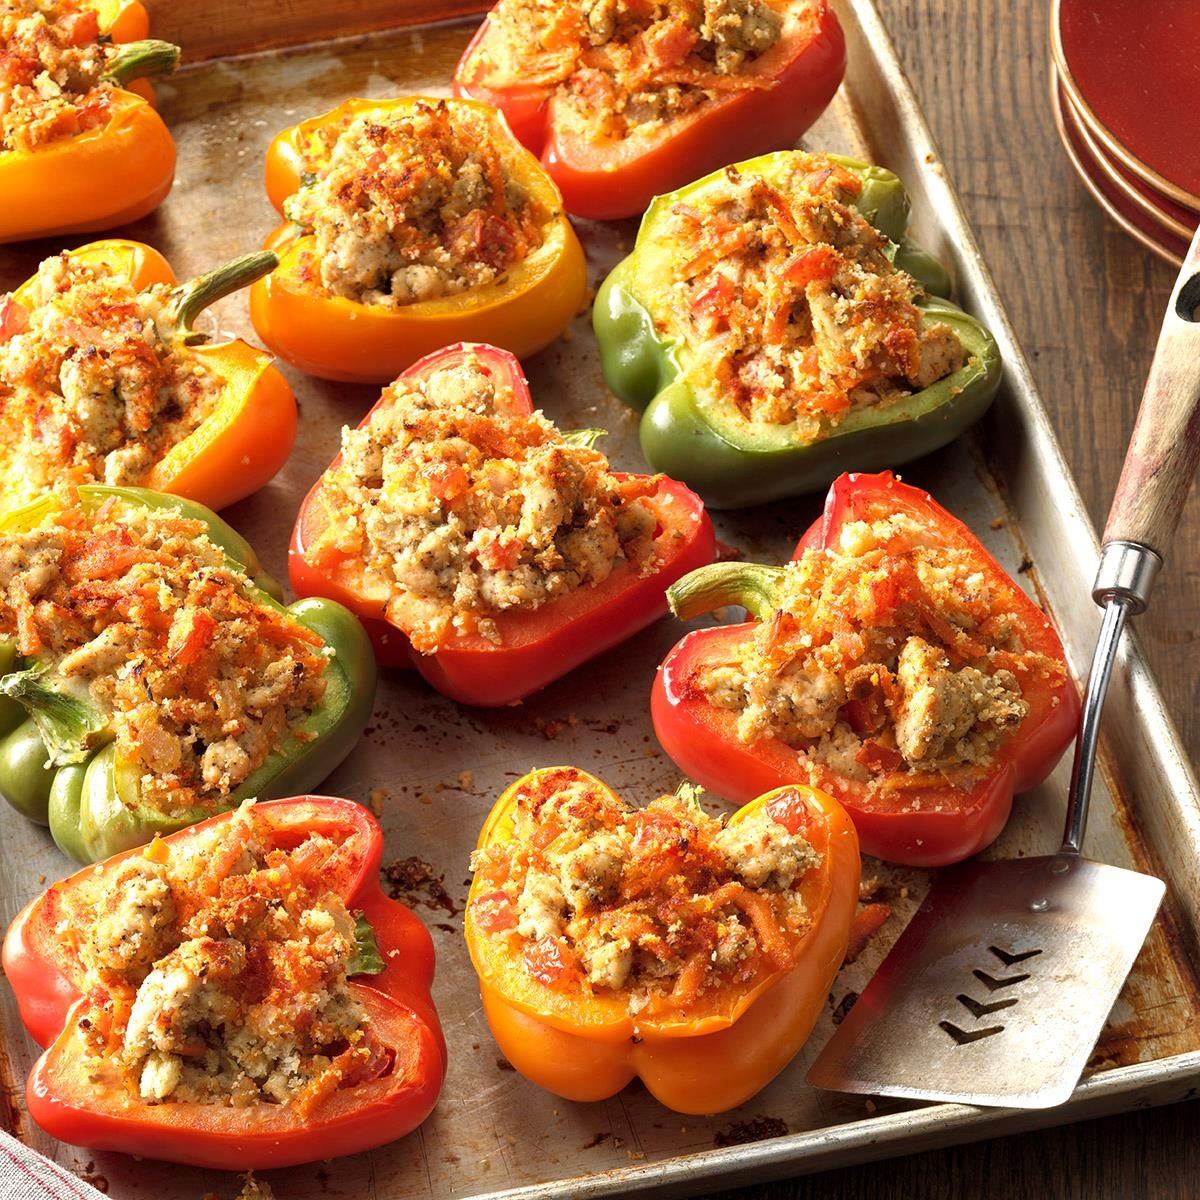 60 Incredibly Delicious Diabetic Dinner Recipes | Taste of Home